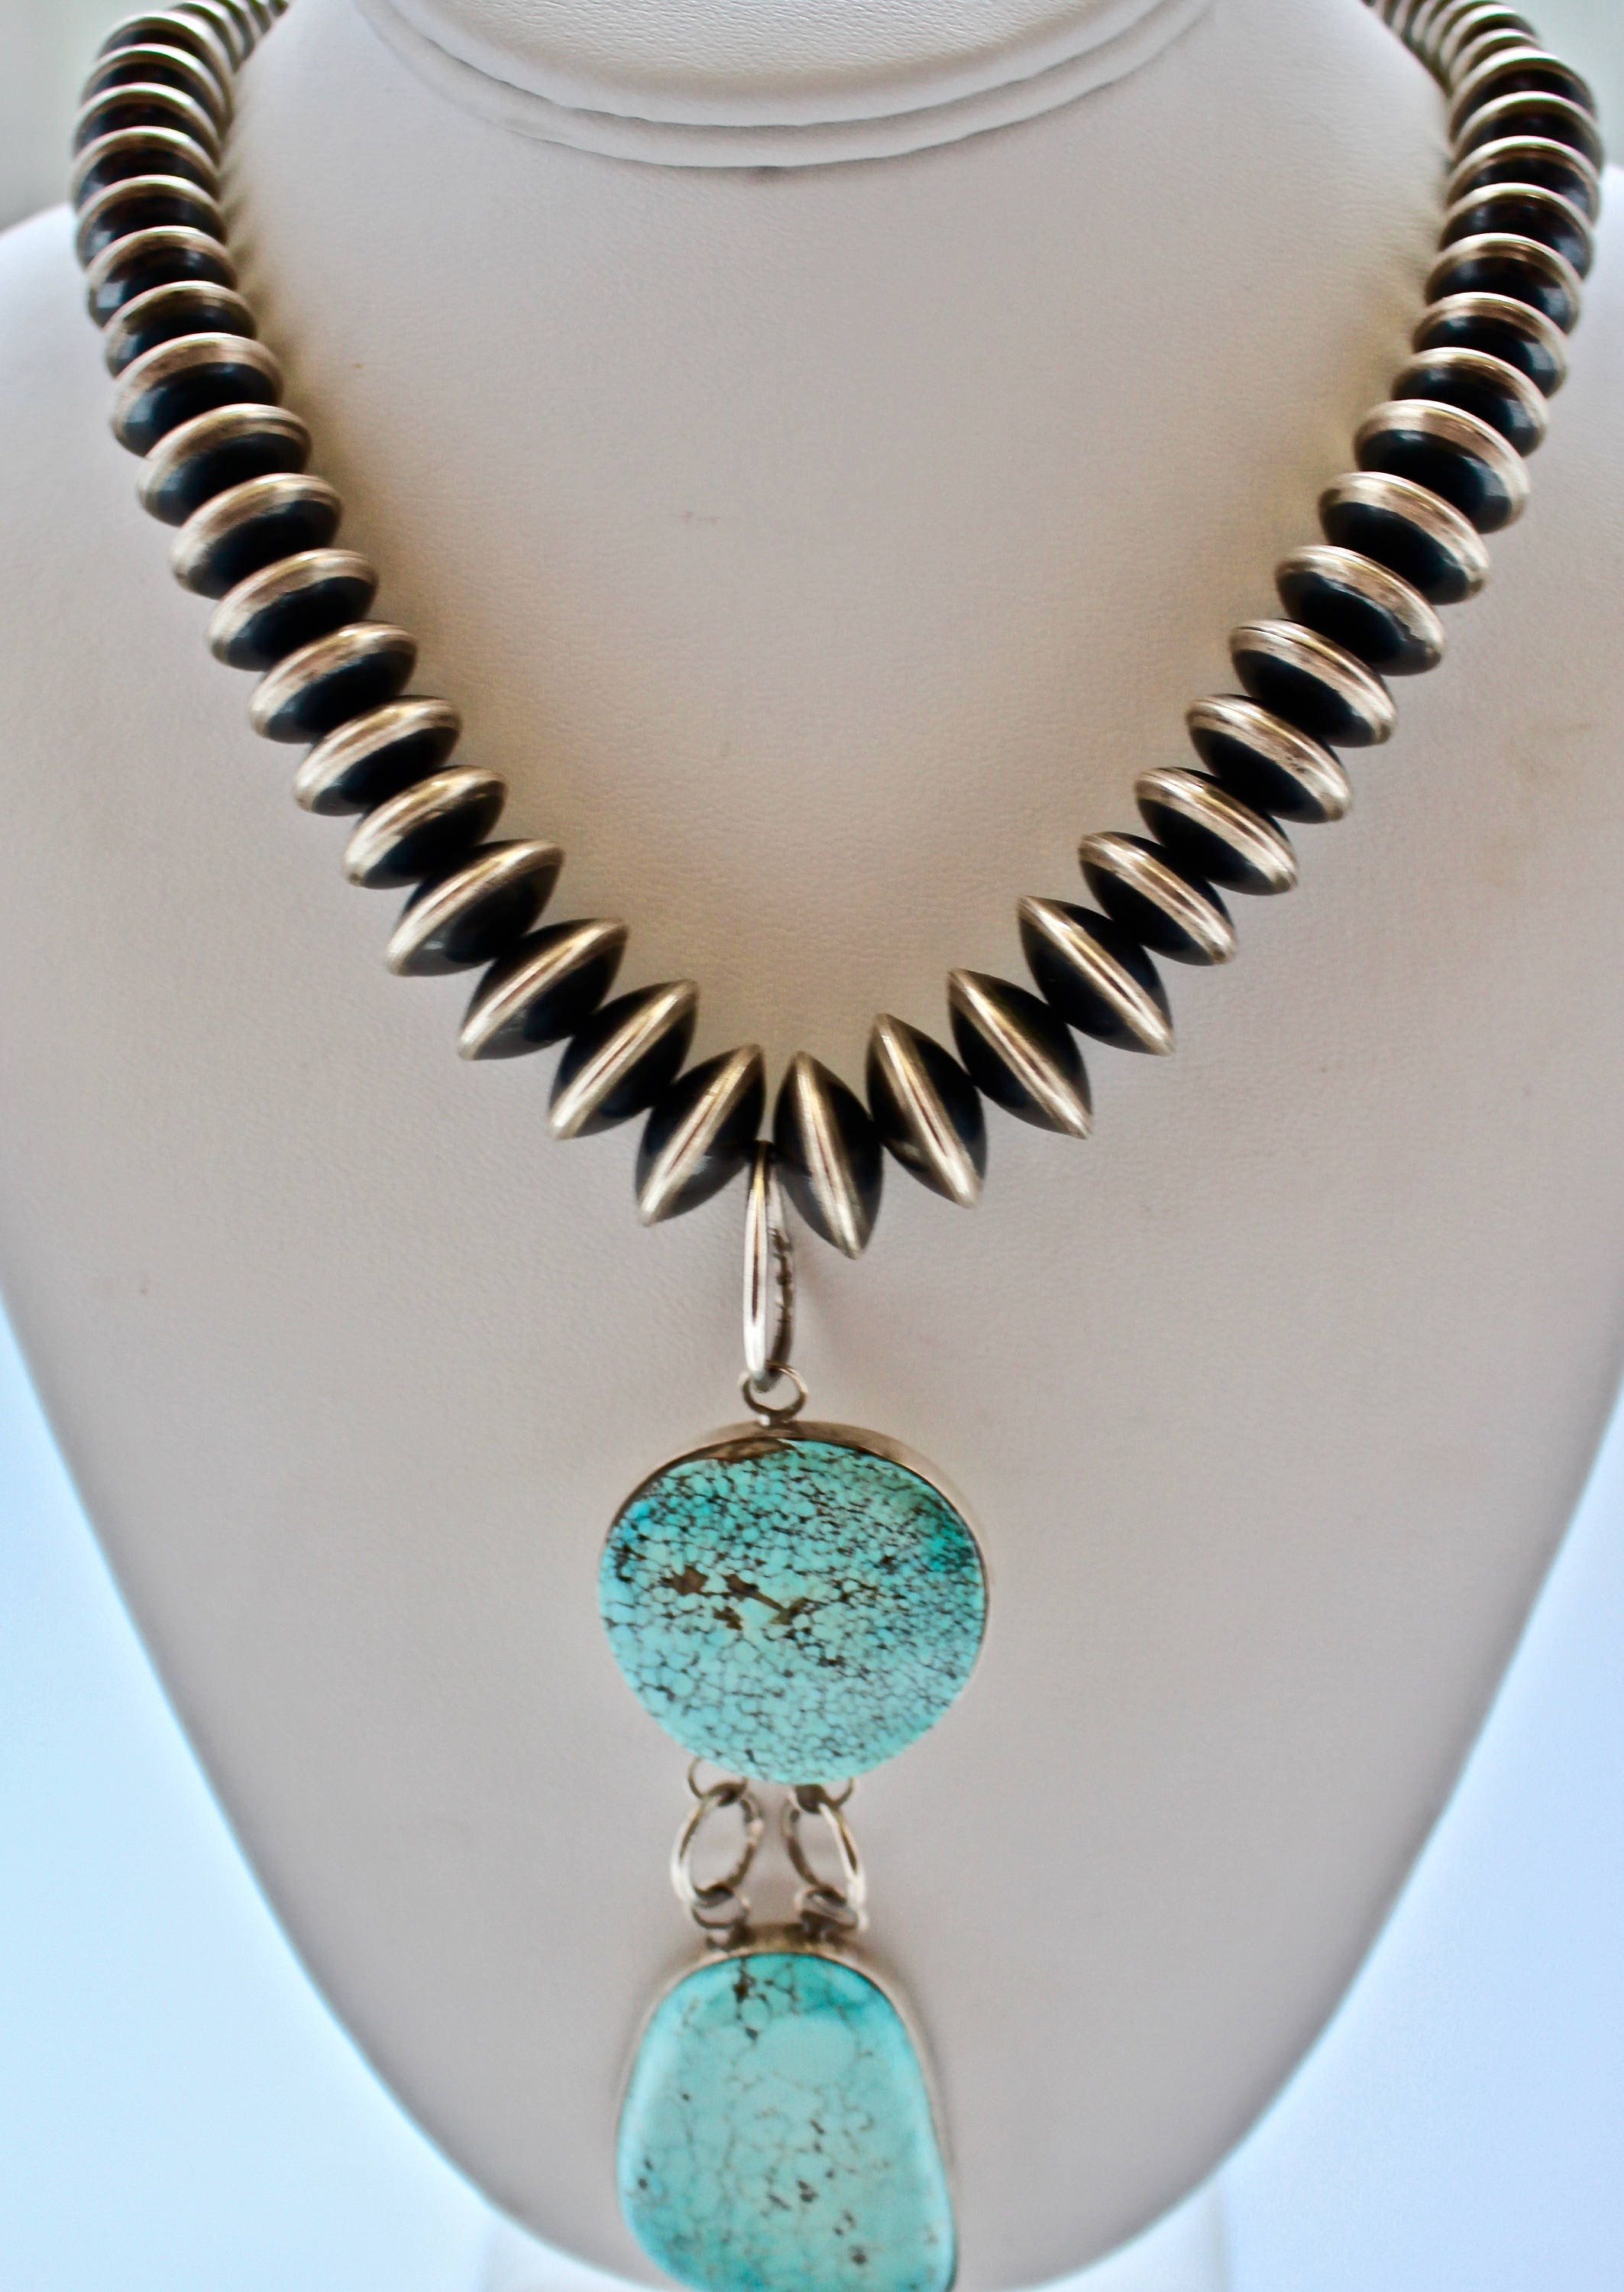 decatur designerjewelry r wc jake necklace rjakesterlingnavajopendantnecklacewc img sterling navajo pendant